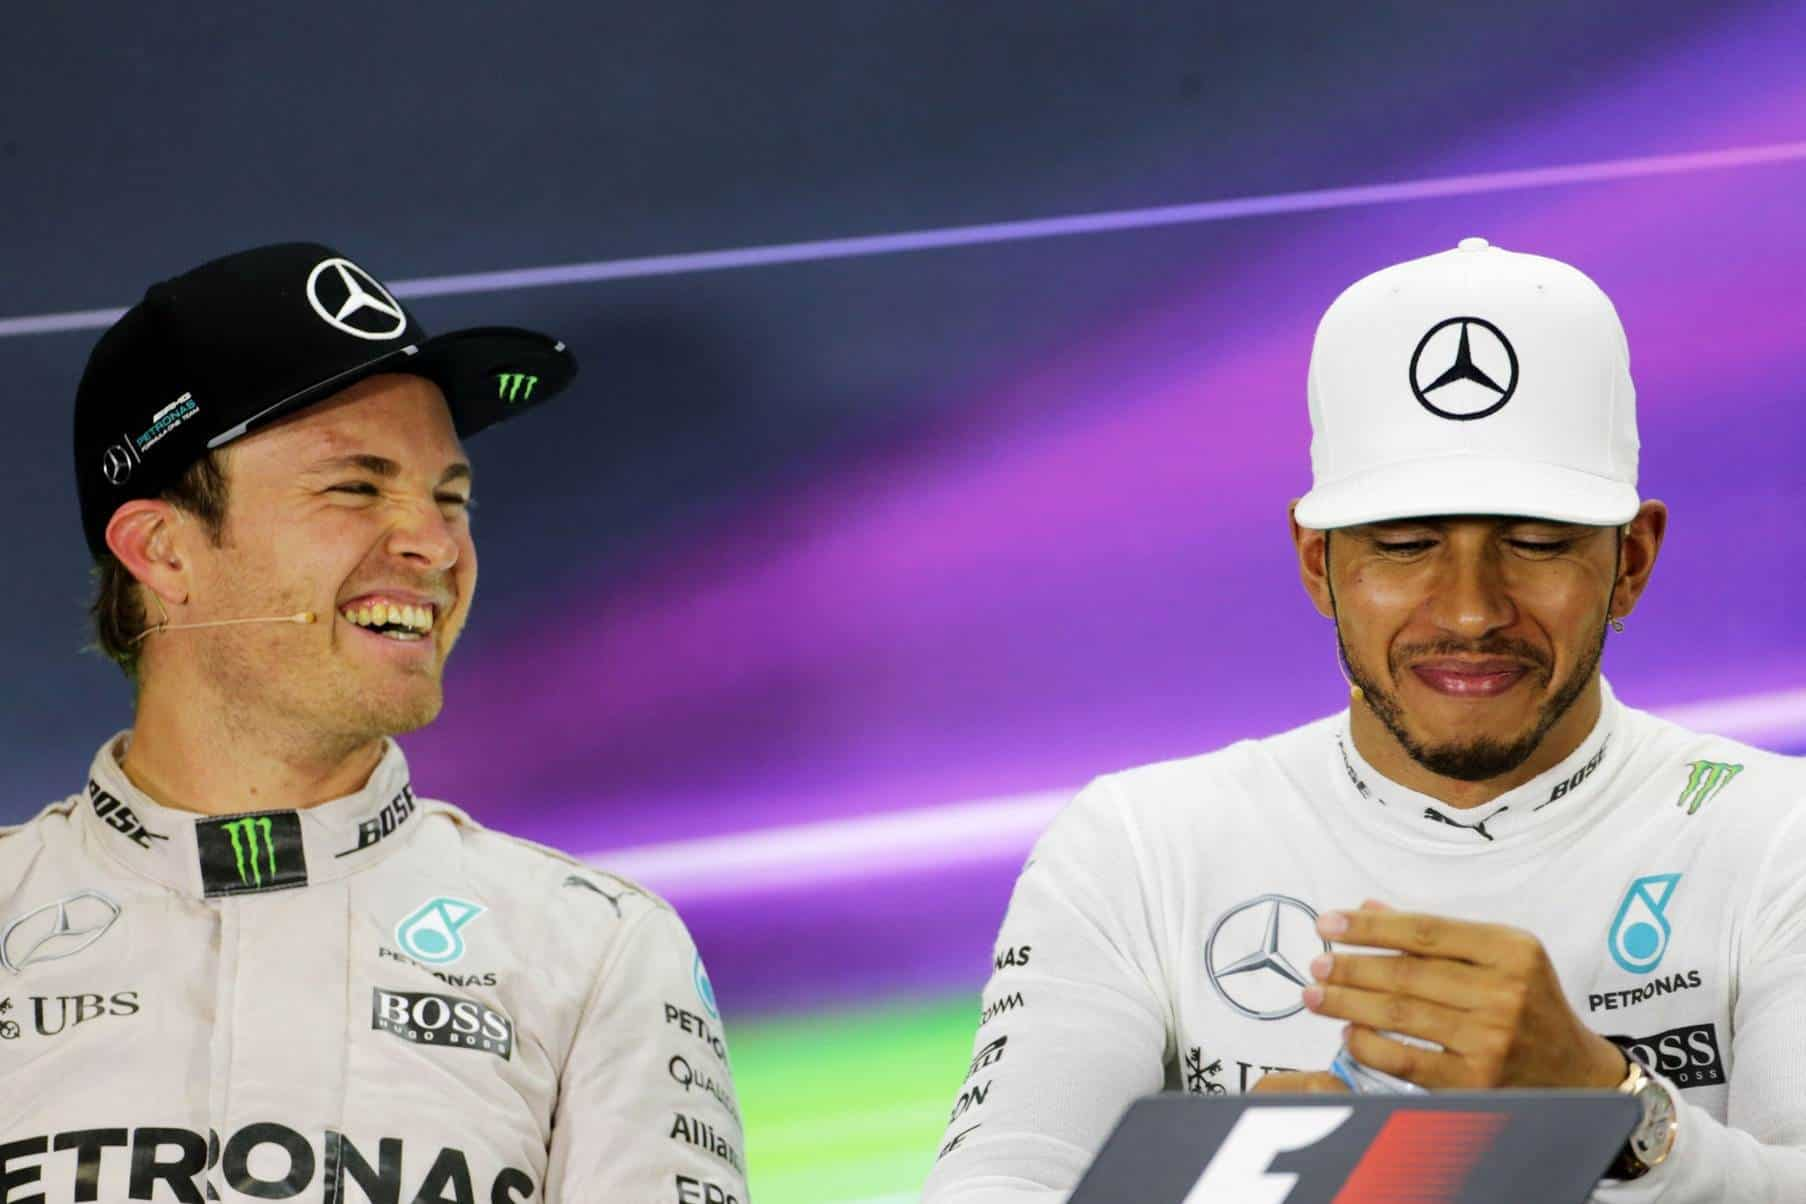 hamilton-rosberg-abu-dhabi-f1-2016-after-the-race-foto-xpb